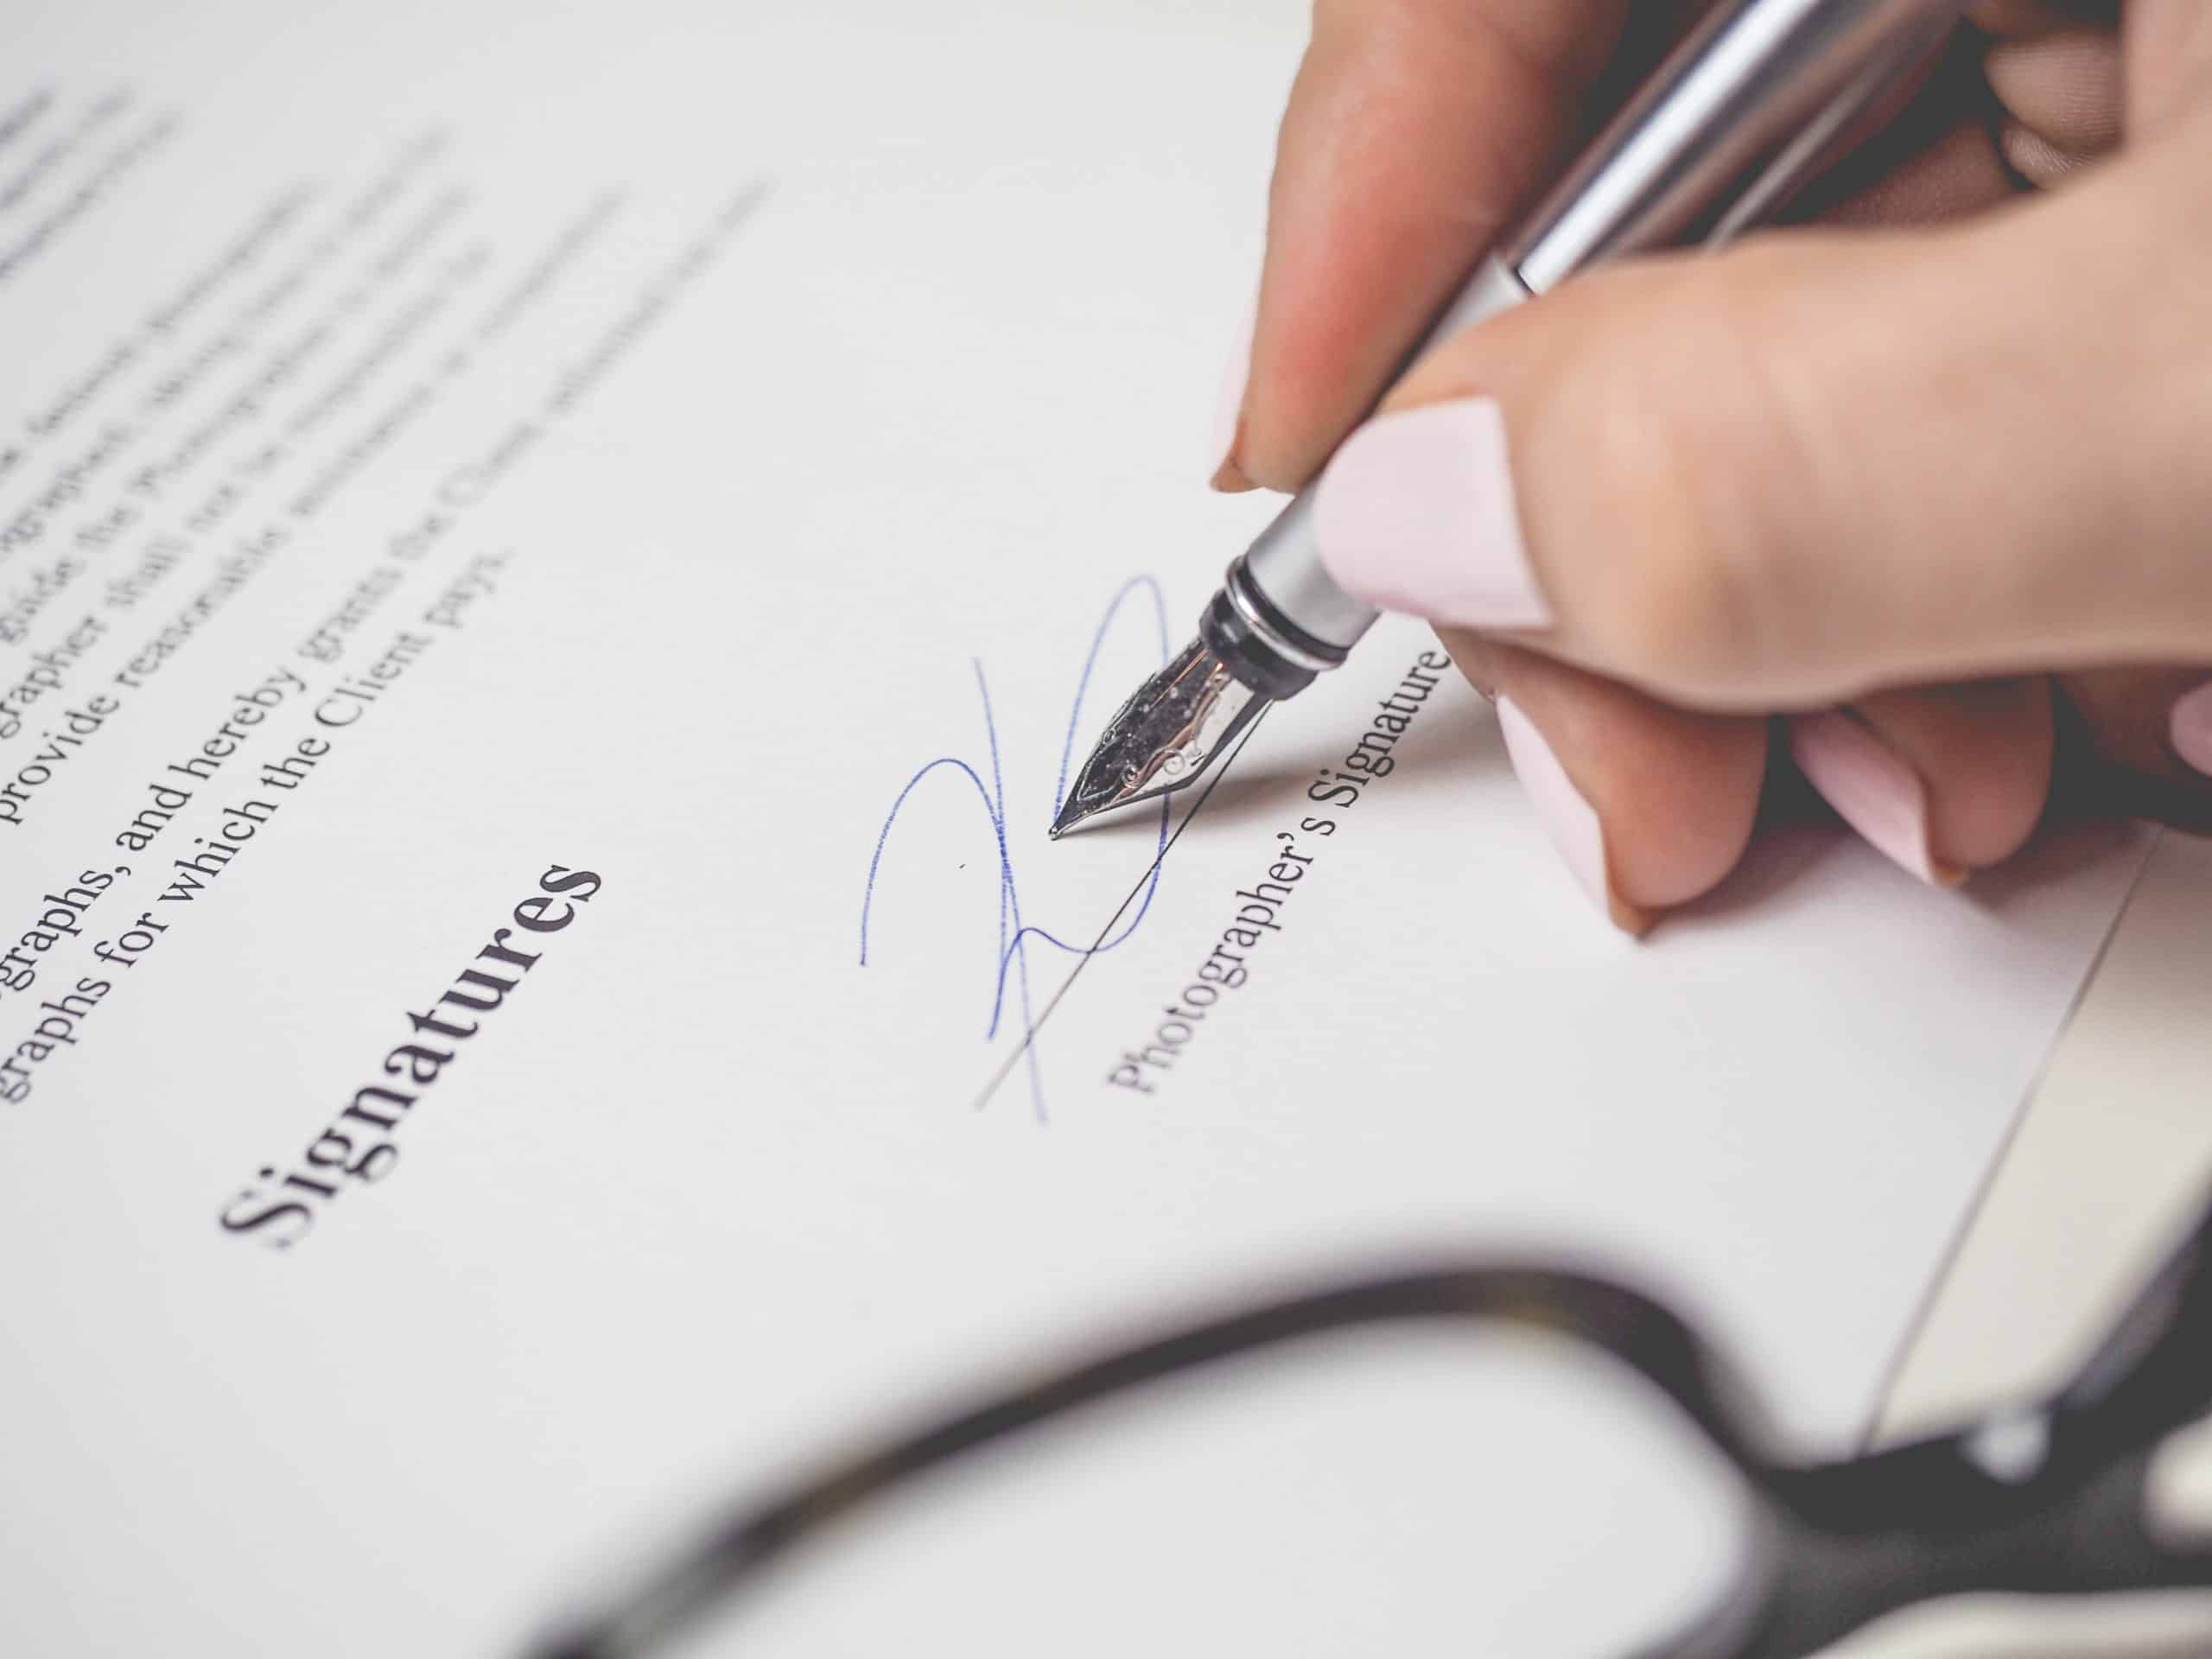 person holding pen, signing document, lease, contracts